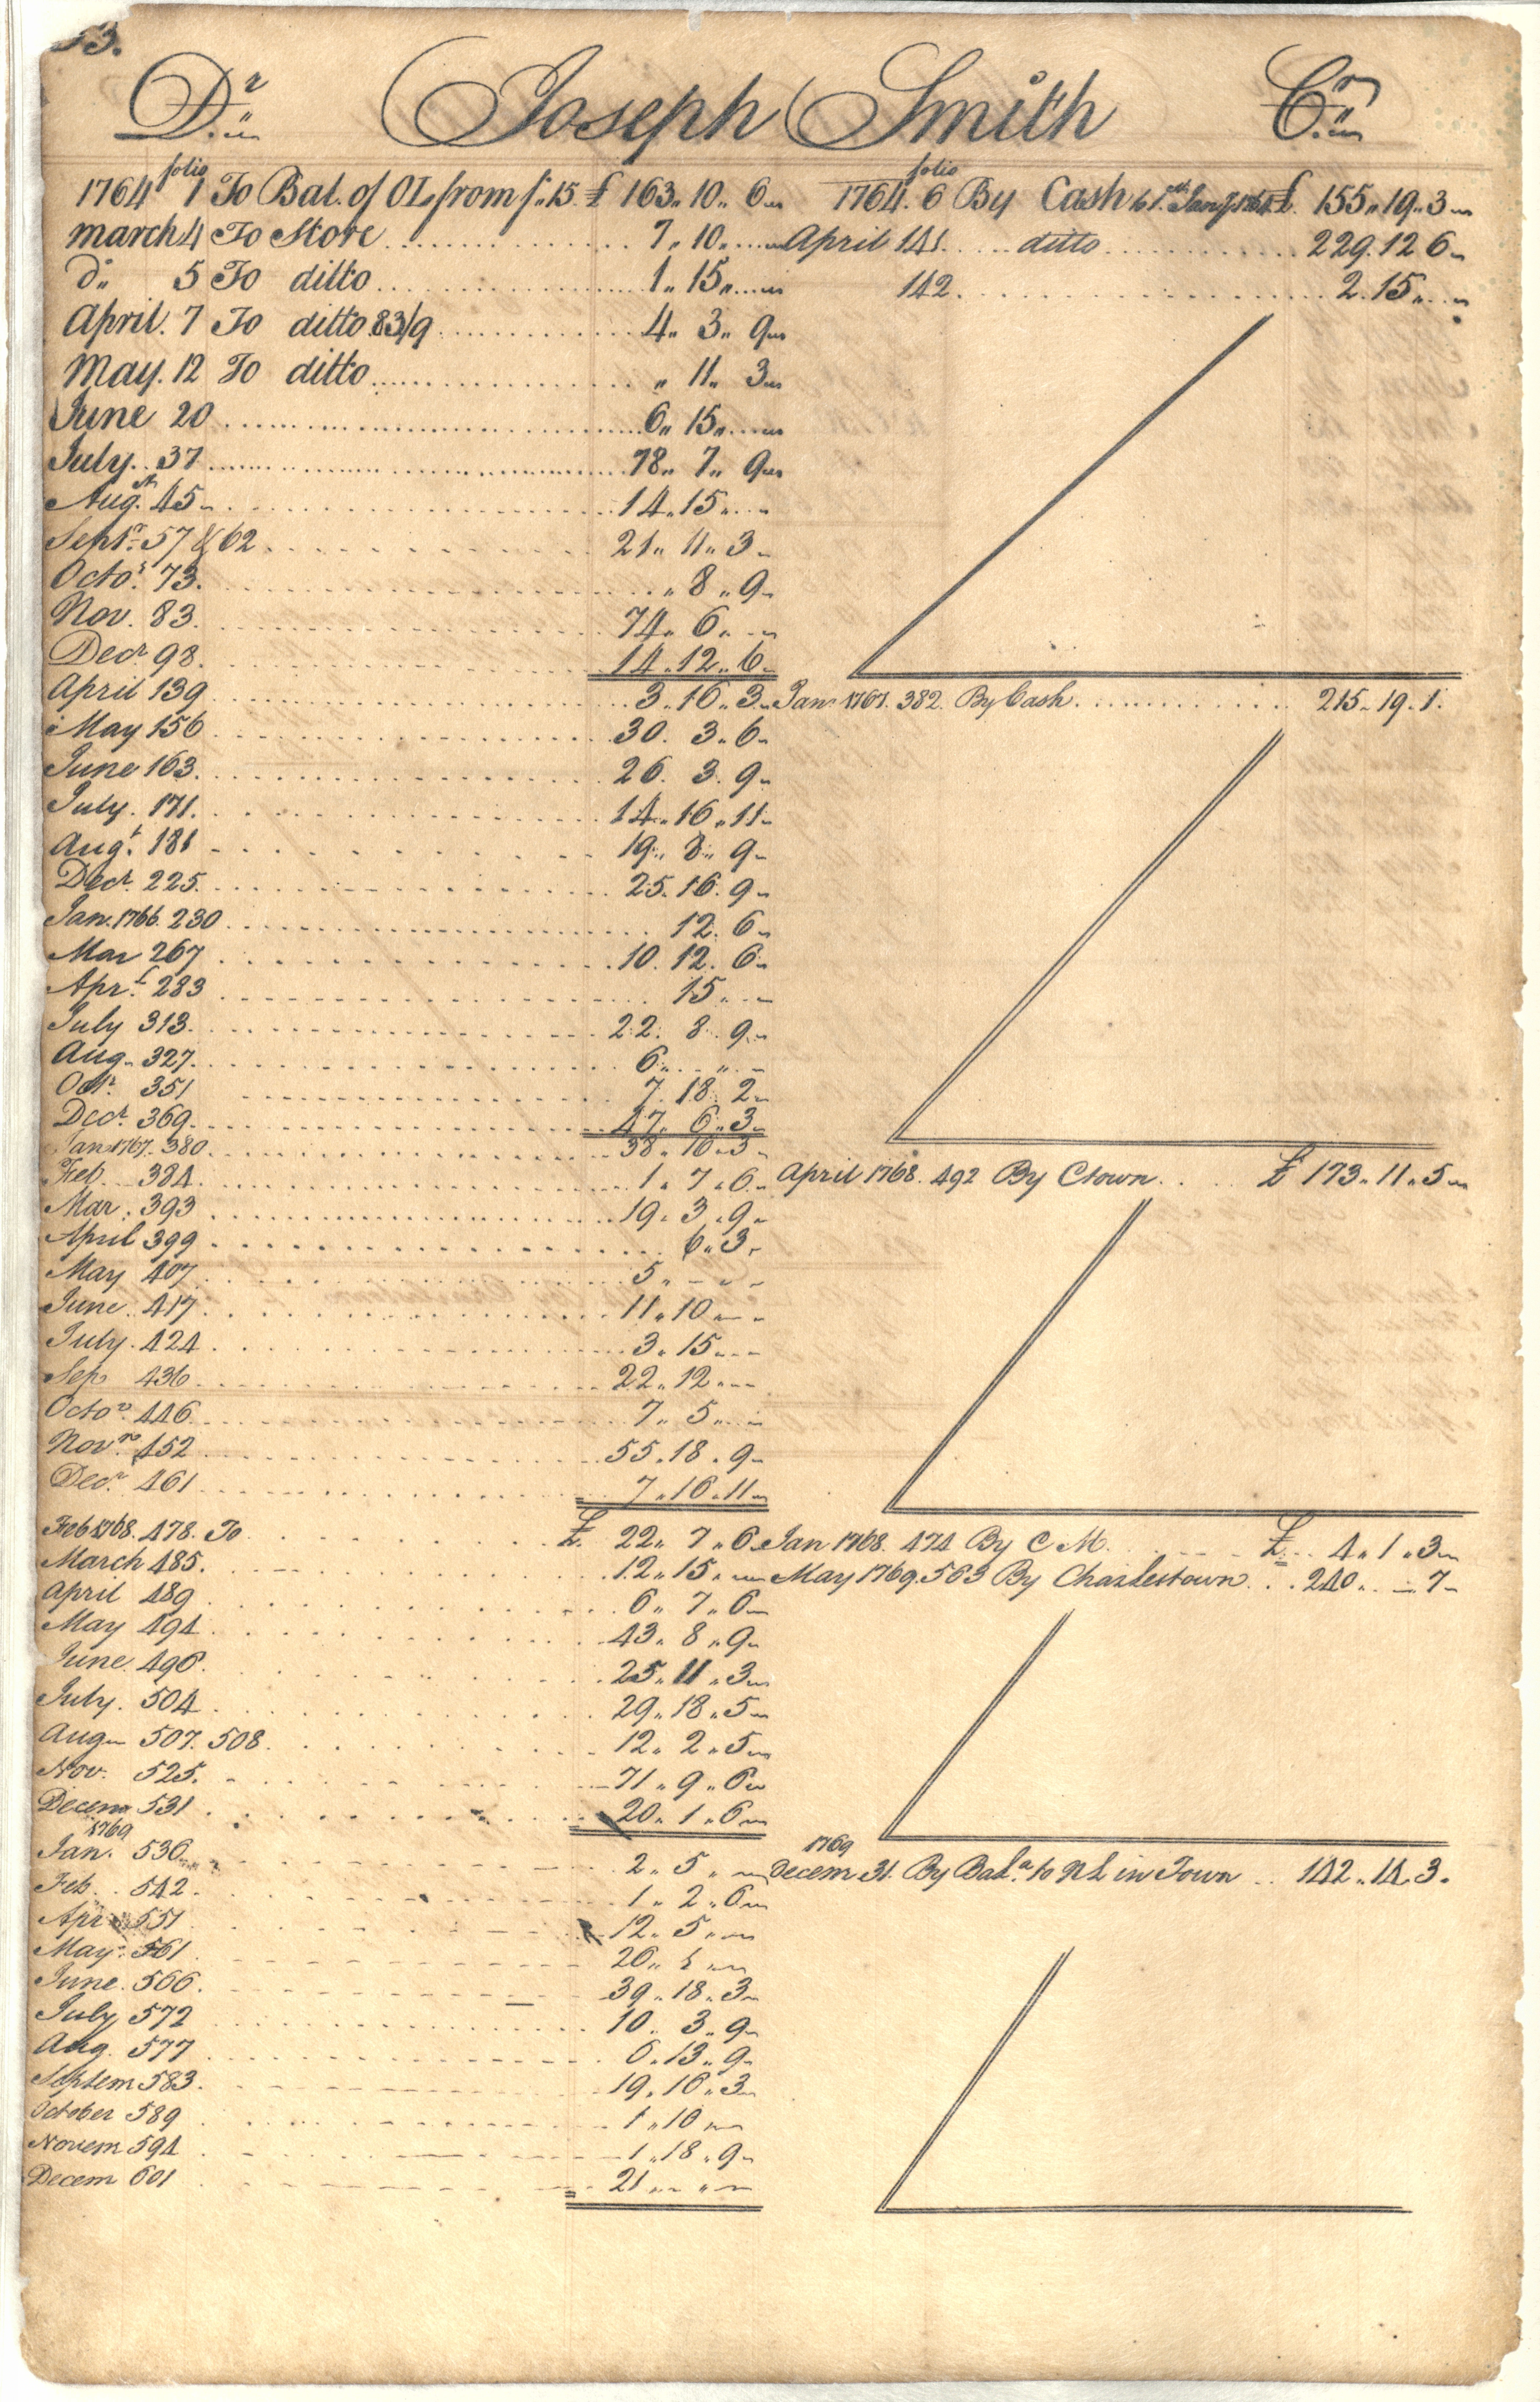 Plowden Weston's Business Ledger, page 33